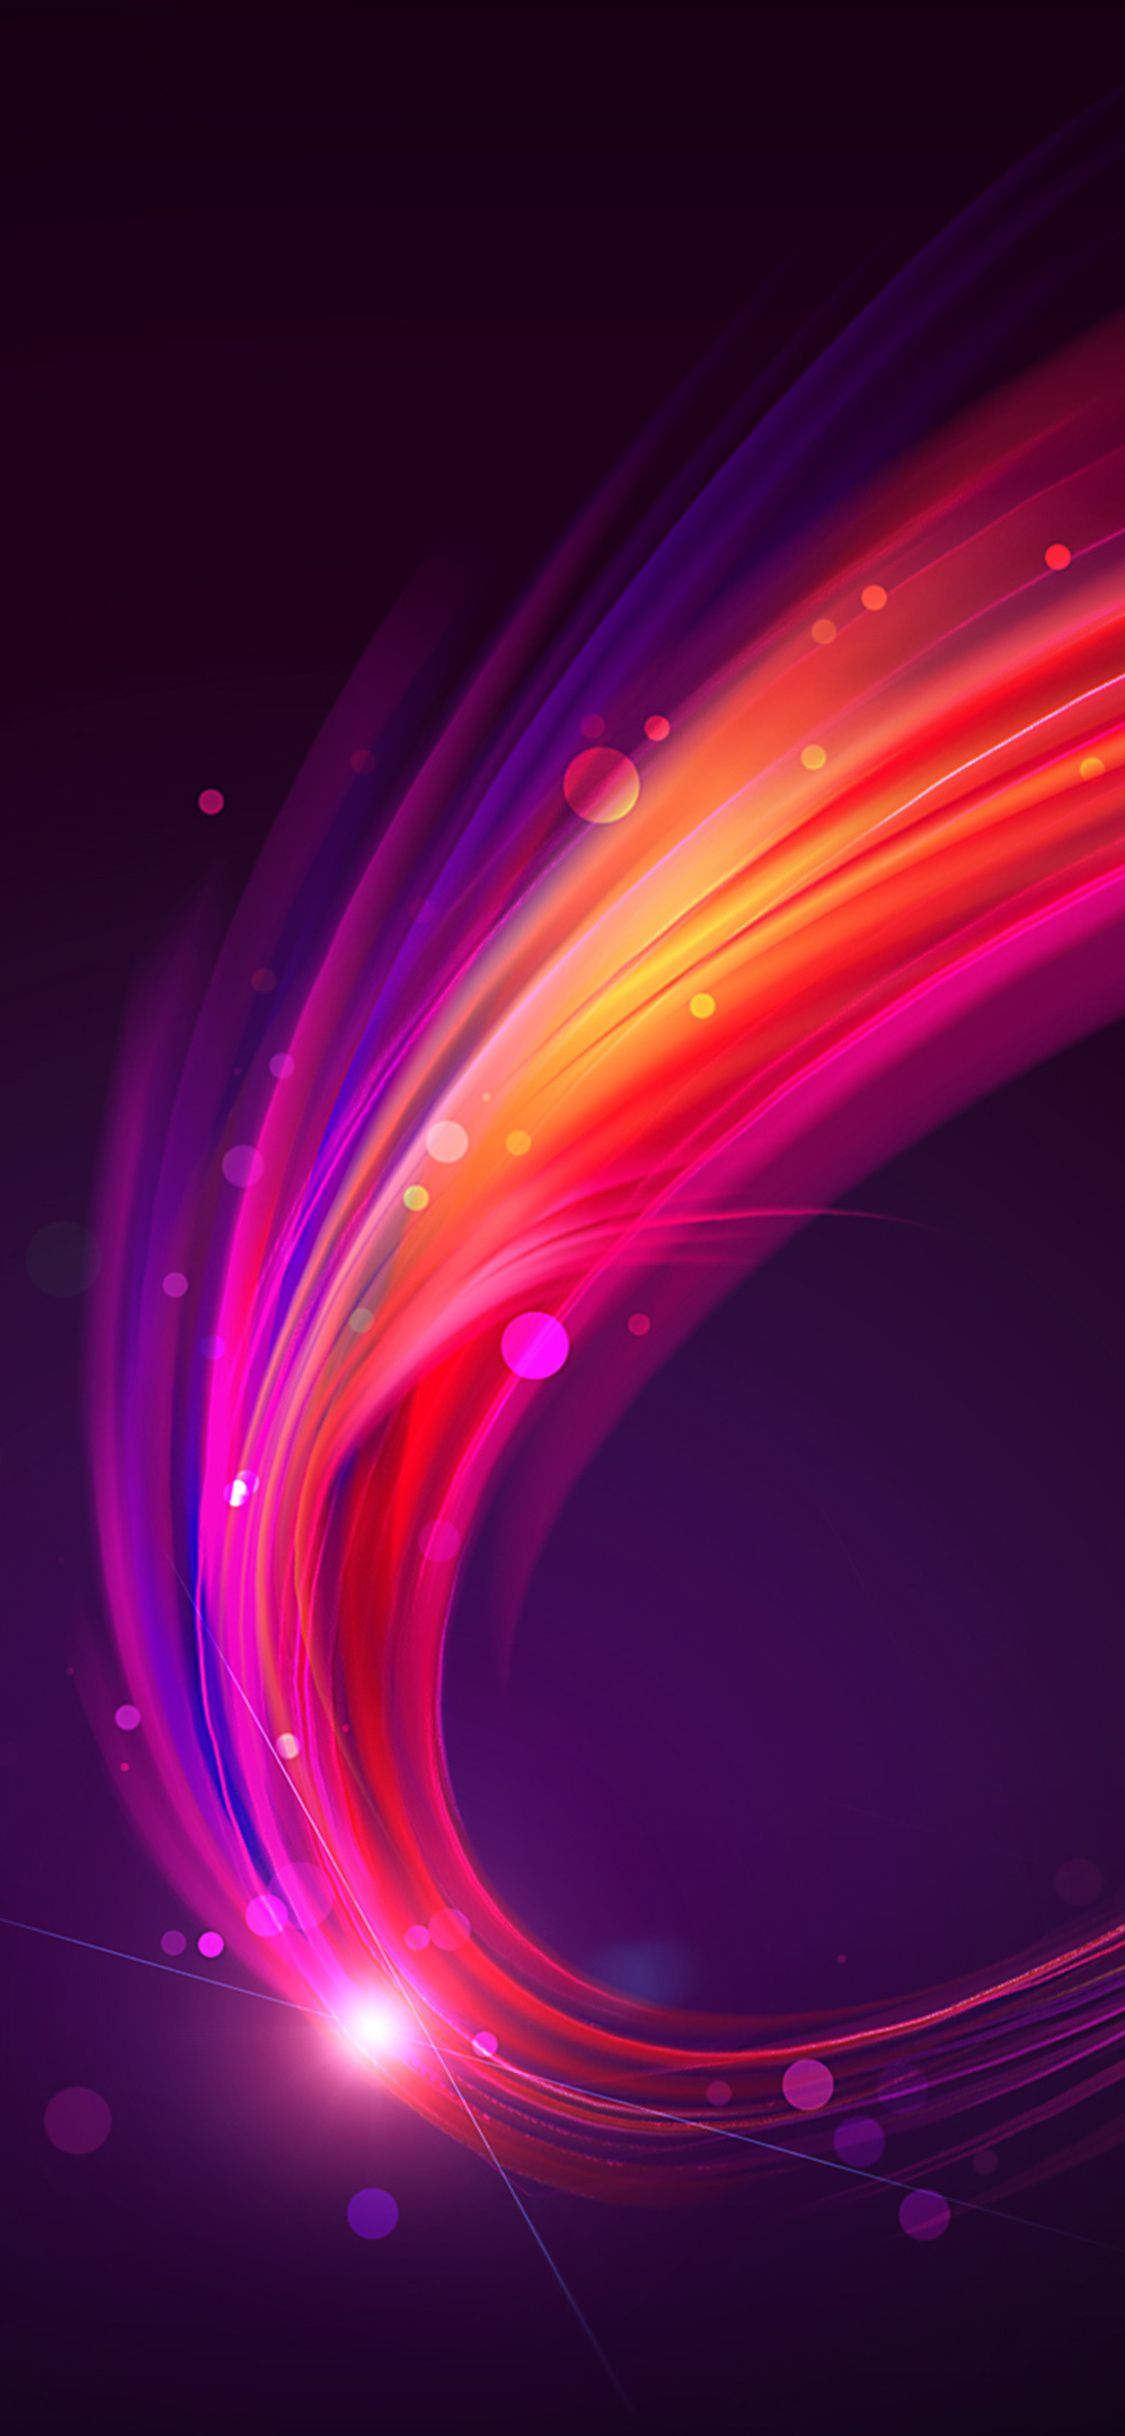 Purple Abstract Waves iPhone X 4K Wallpaper